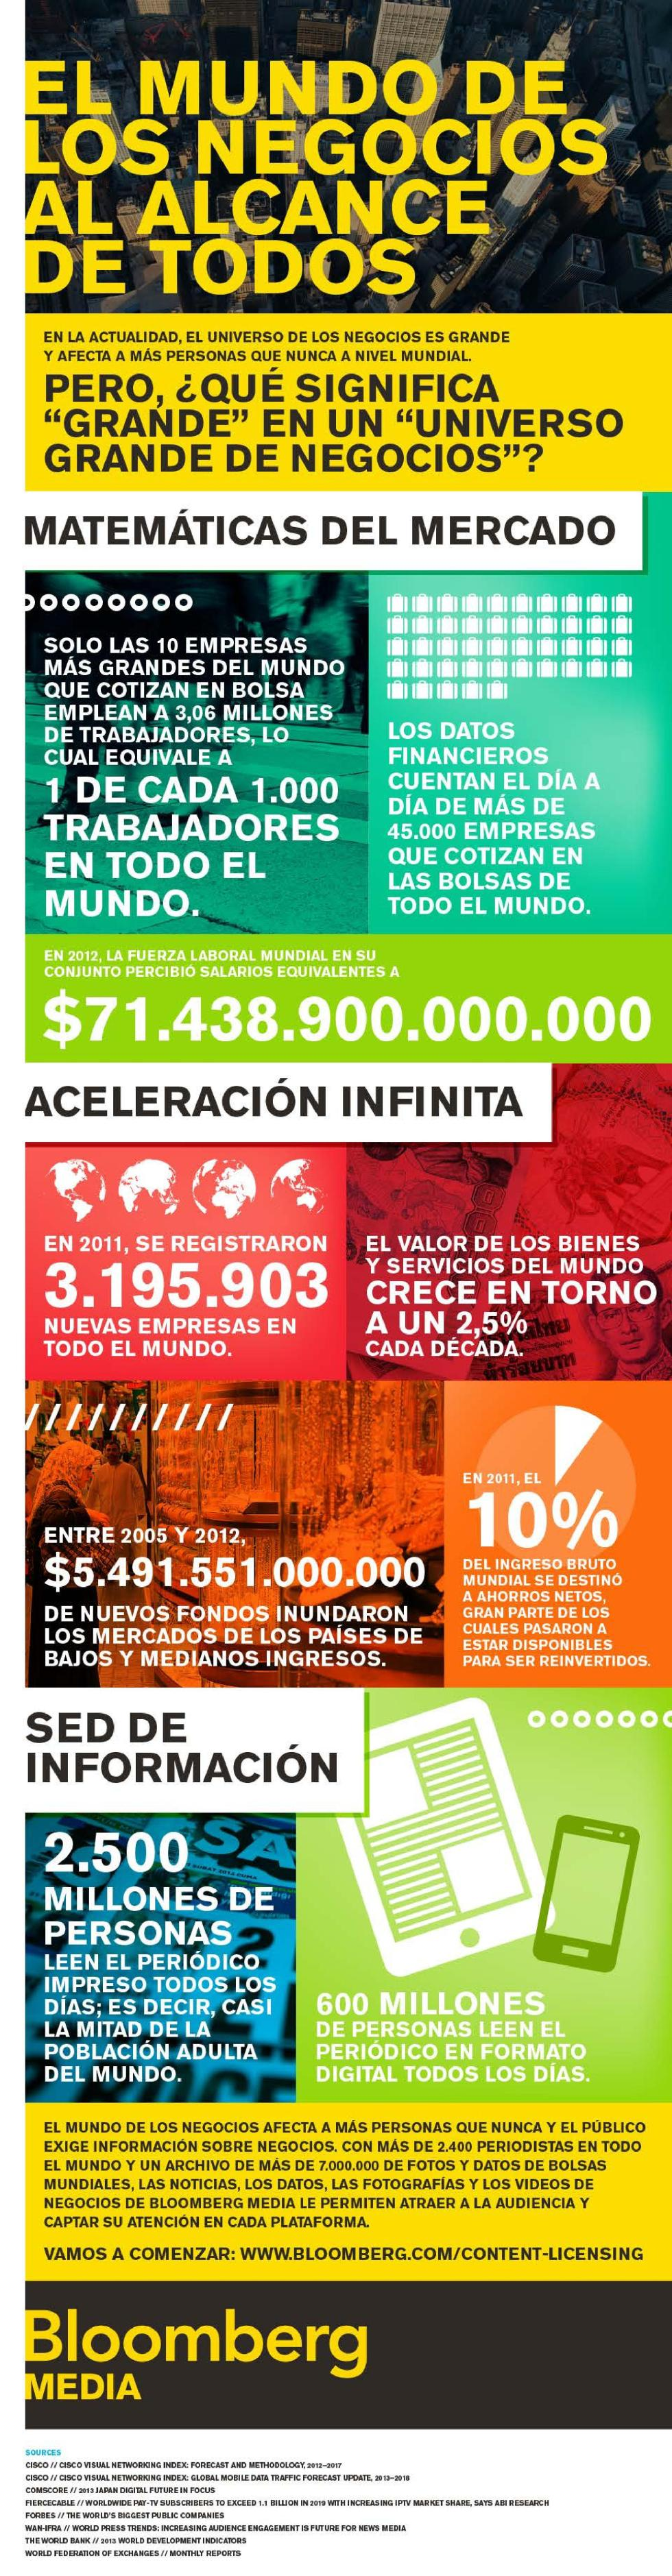 Bloomberg-Big-Biz-Infographic-ES-page-001